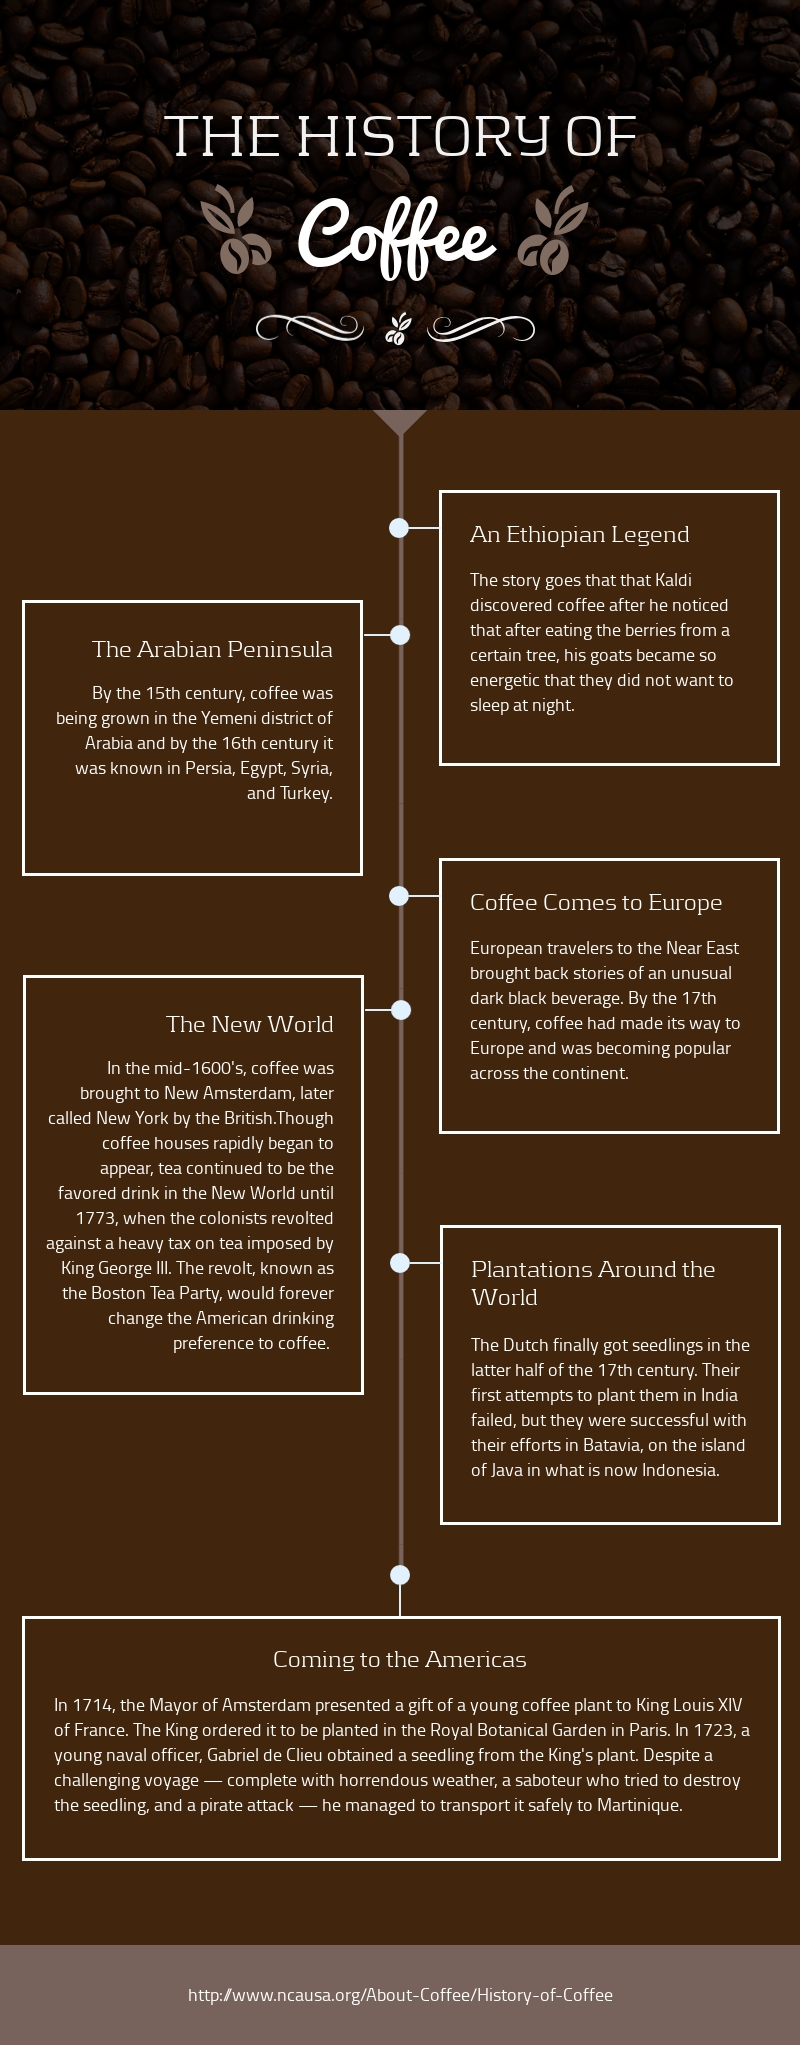 The History of Coffee Timeline